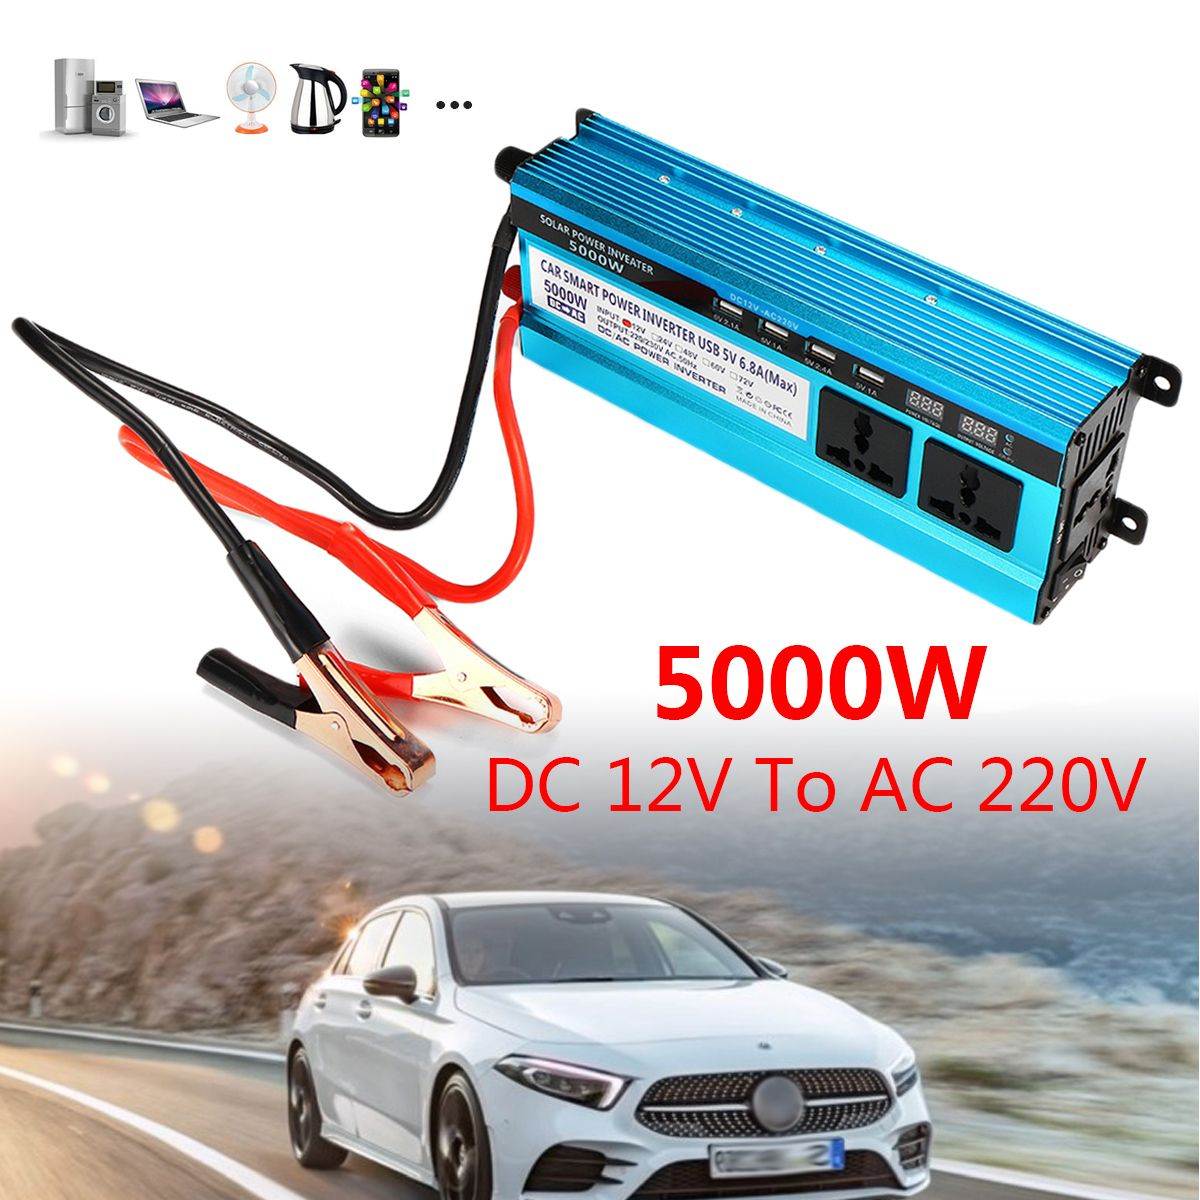 5000W Peaks 12V/24V DC to 220VAC Solar Power Inverter Dual LED Screens Modified Sine Wave Converter Overload Protection Cool Fan